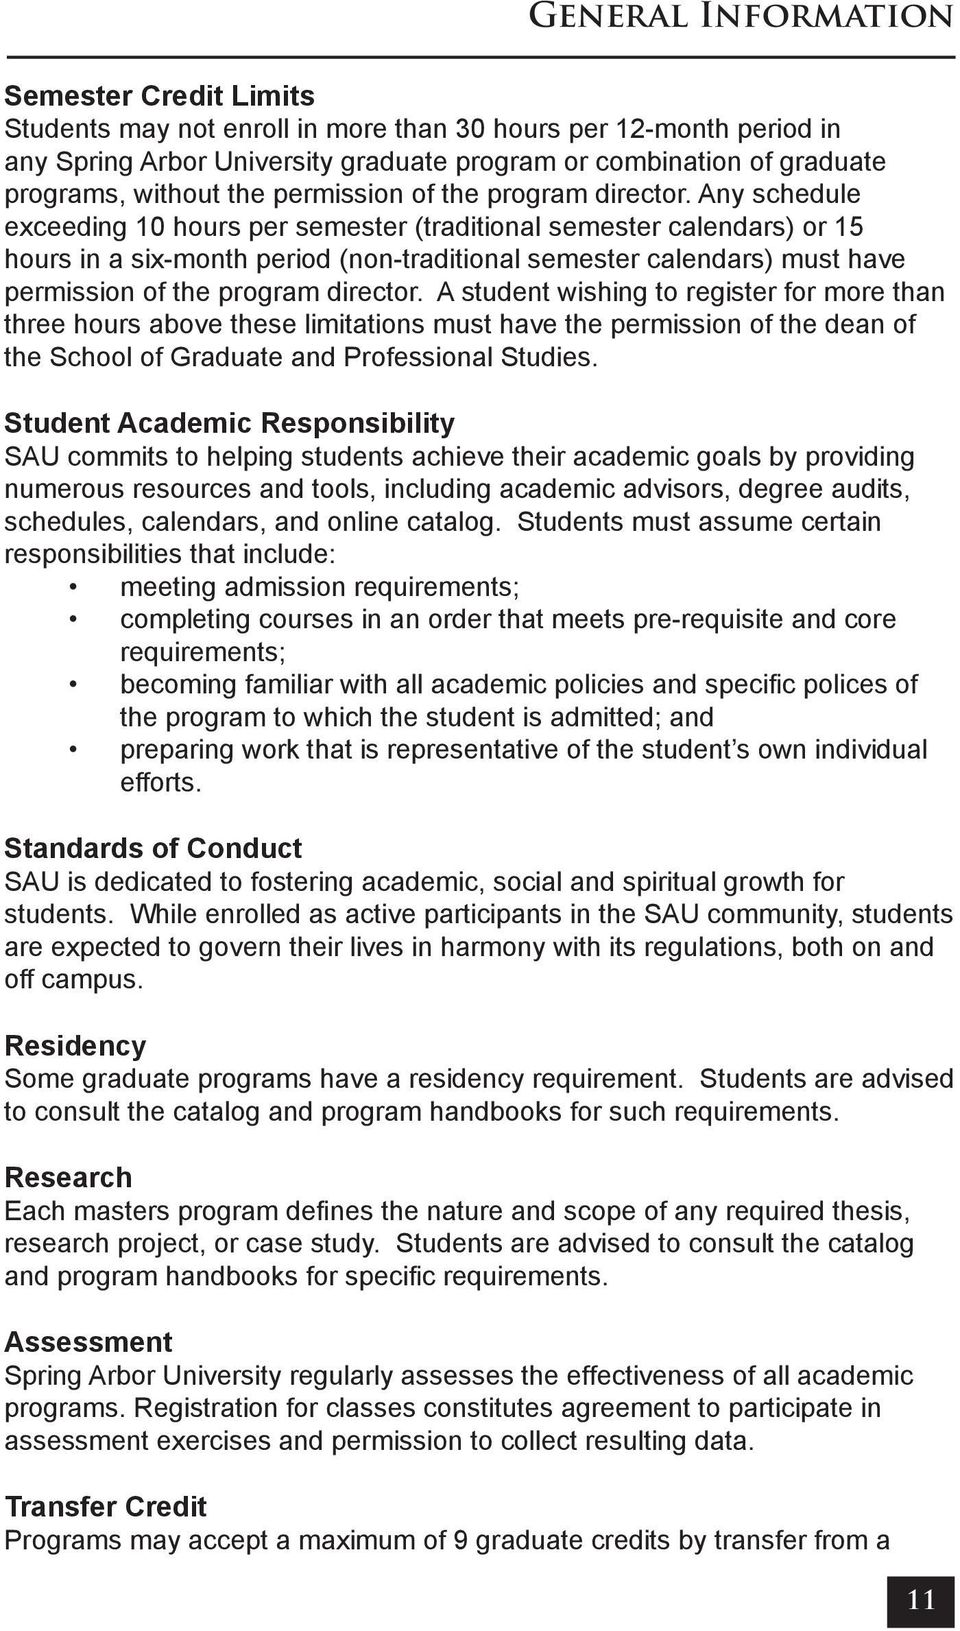 Any schedule exceeding 10 hours per semester (traditional semester calendars) or 15 hours in a six-month period (non-traditional semester calendars) must have permission of the program director.